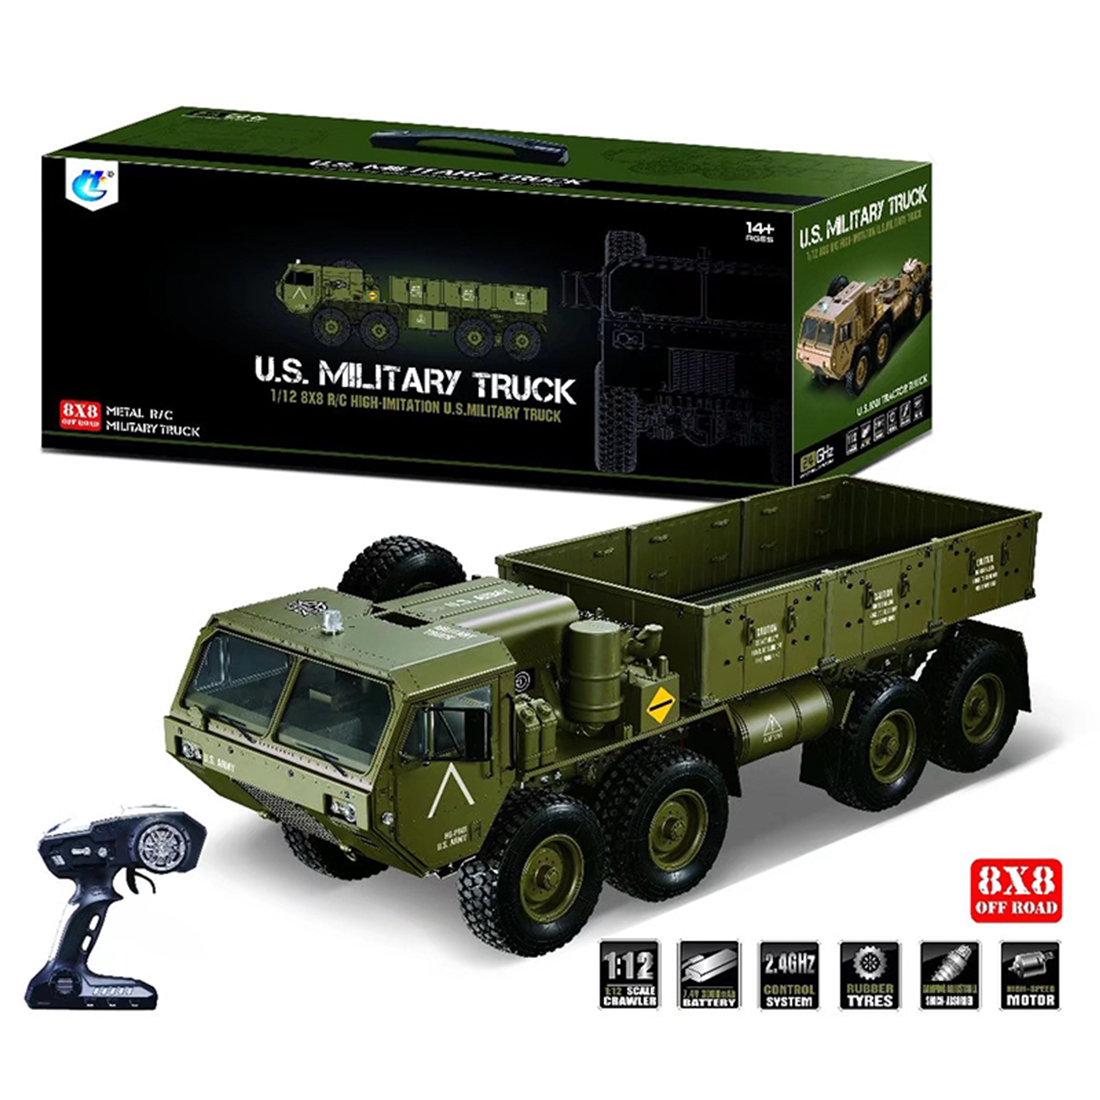 1:12 8 X 8 R/C 2.4G Electric Remote Control Militray Truck Model All Terrin Truck Kit - Desert Yellow